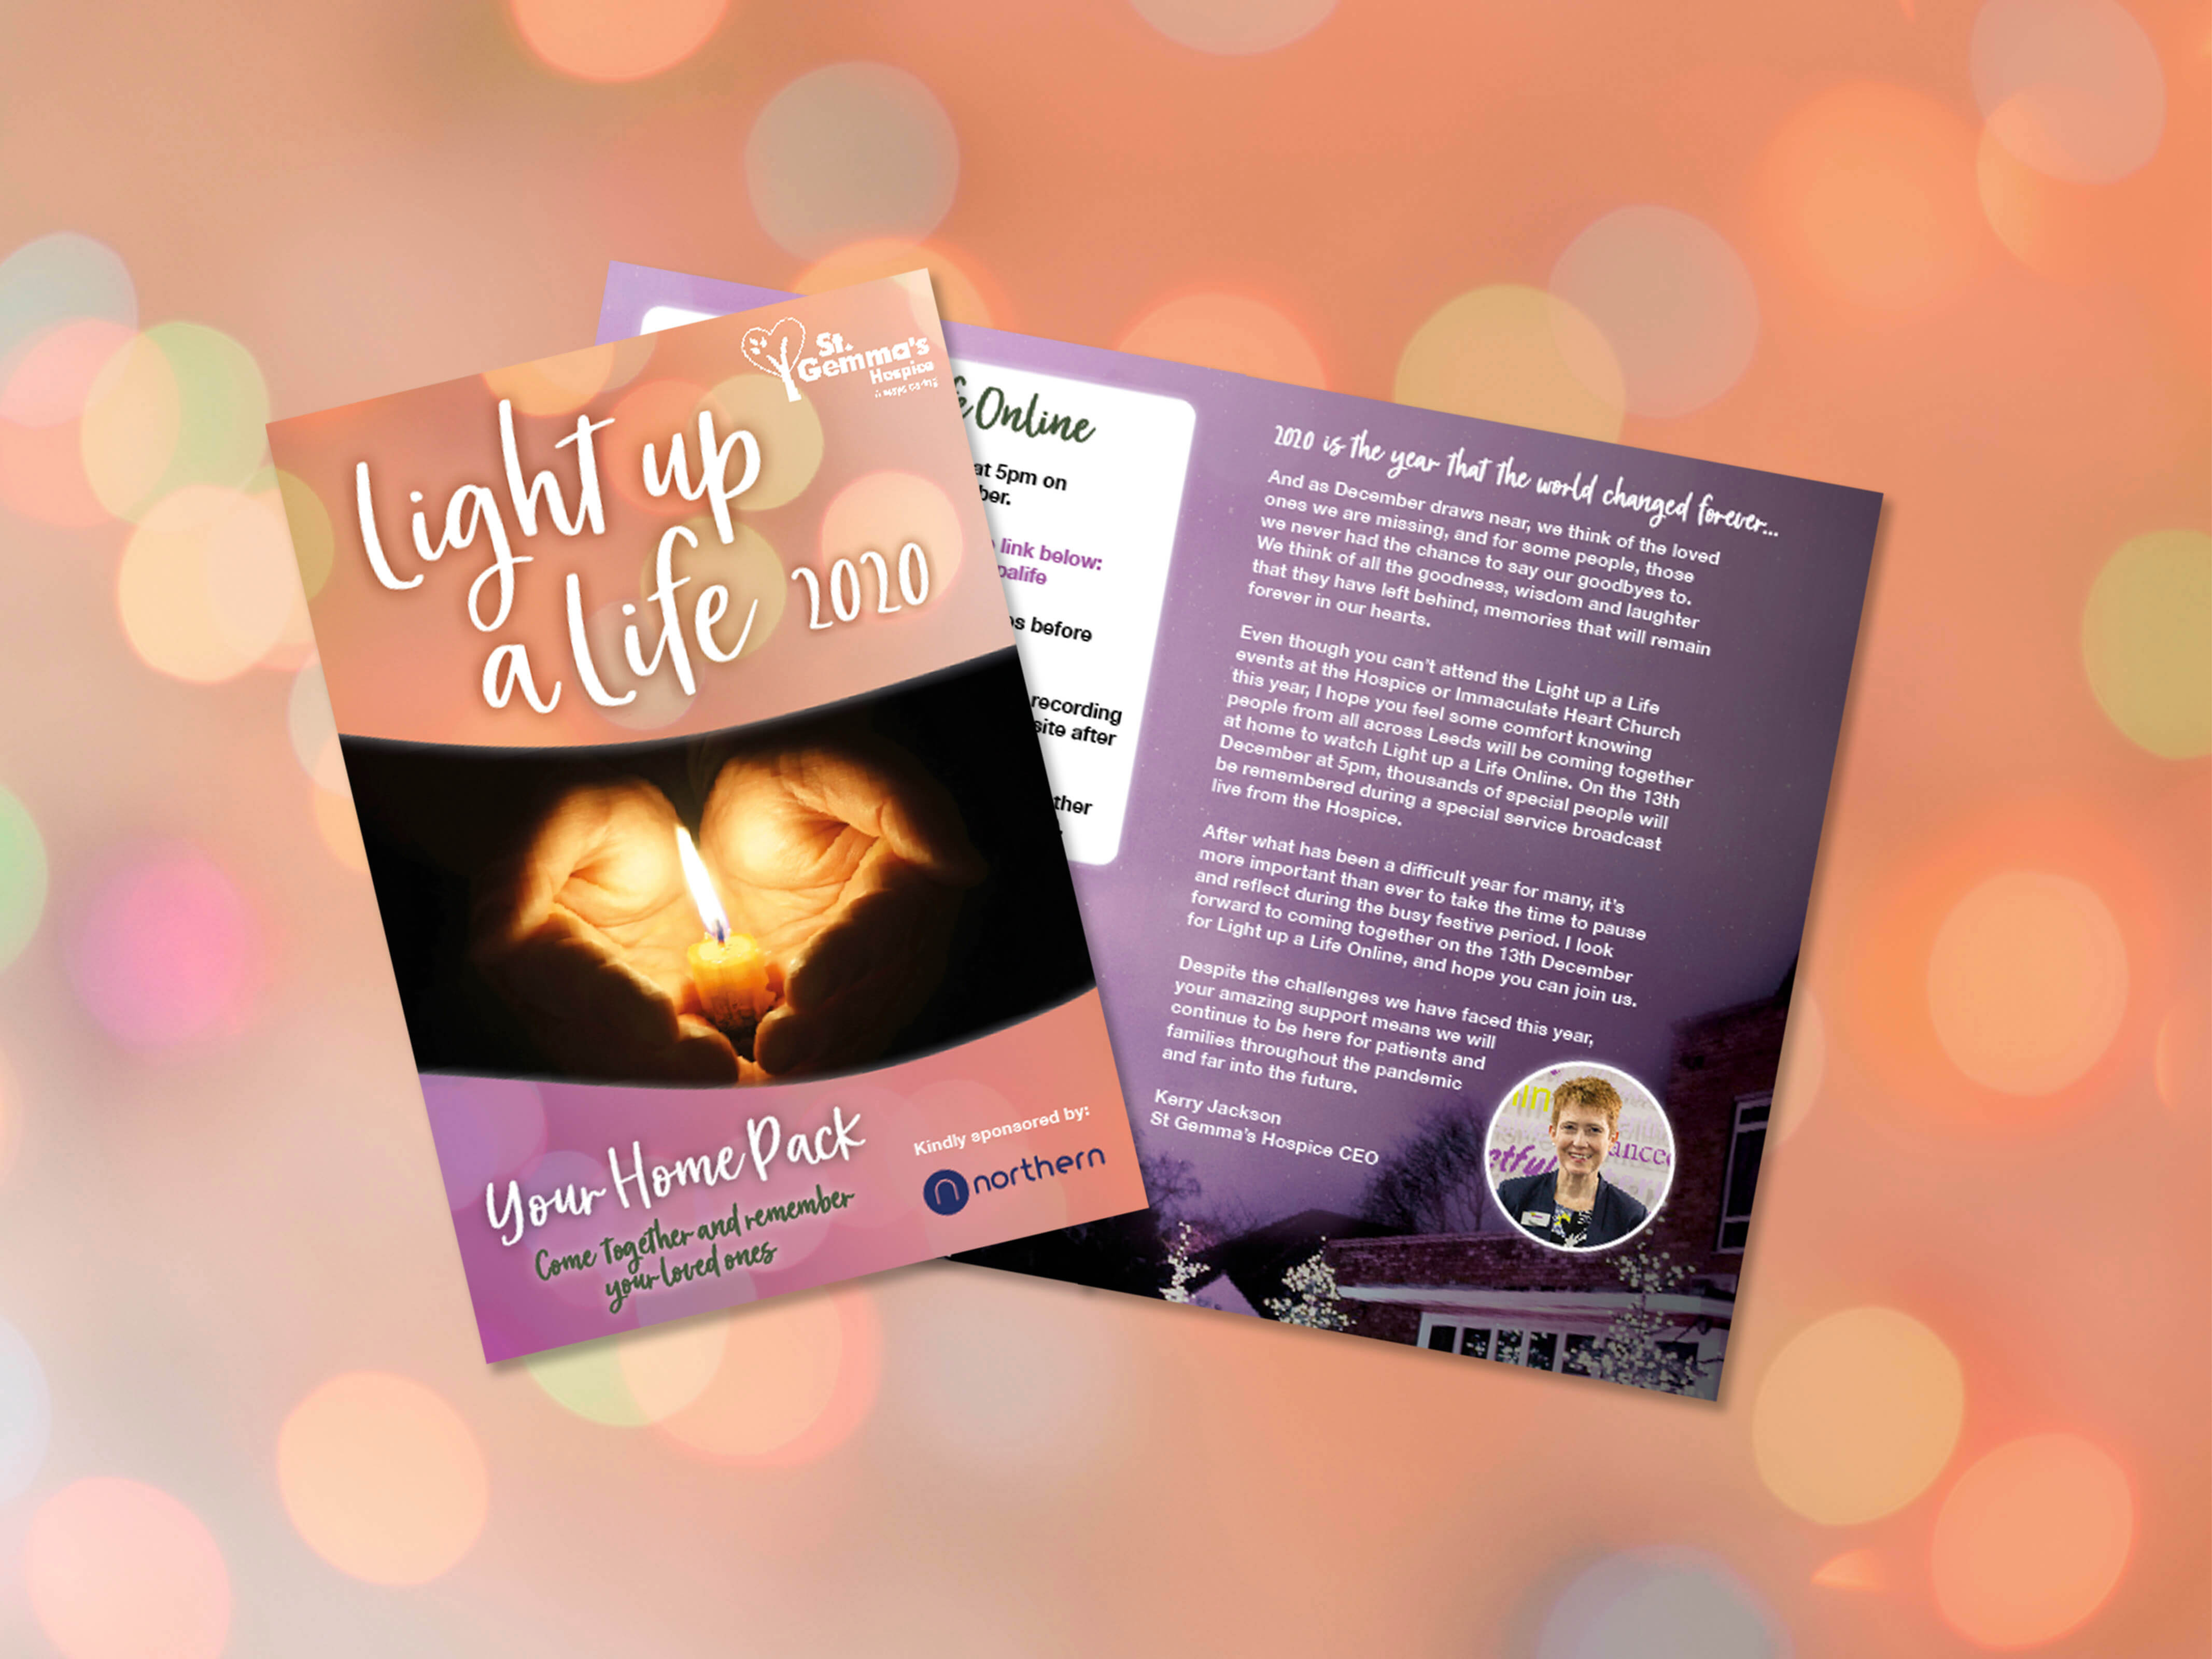 Pages from the Light up a Life home pack